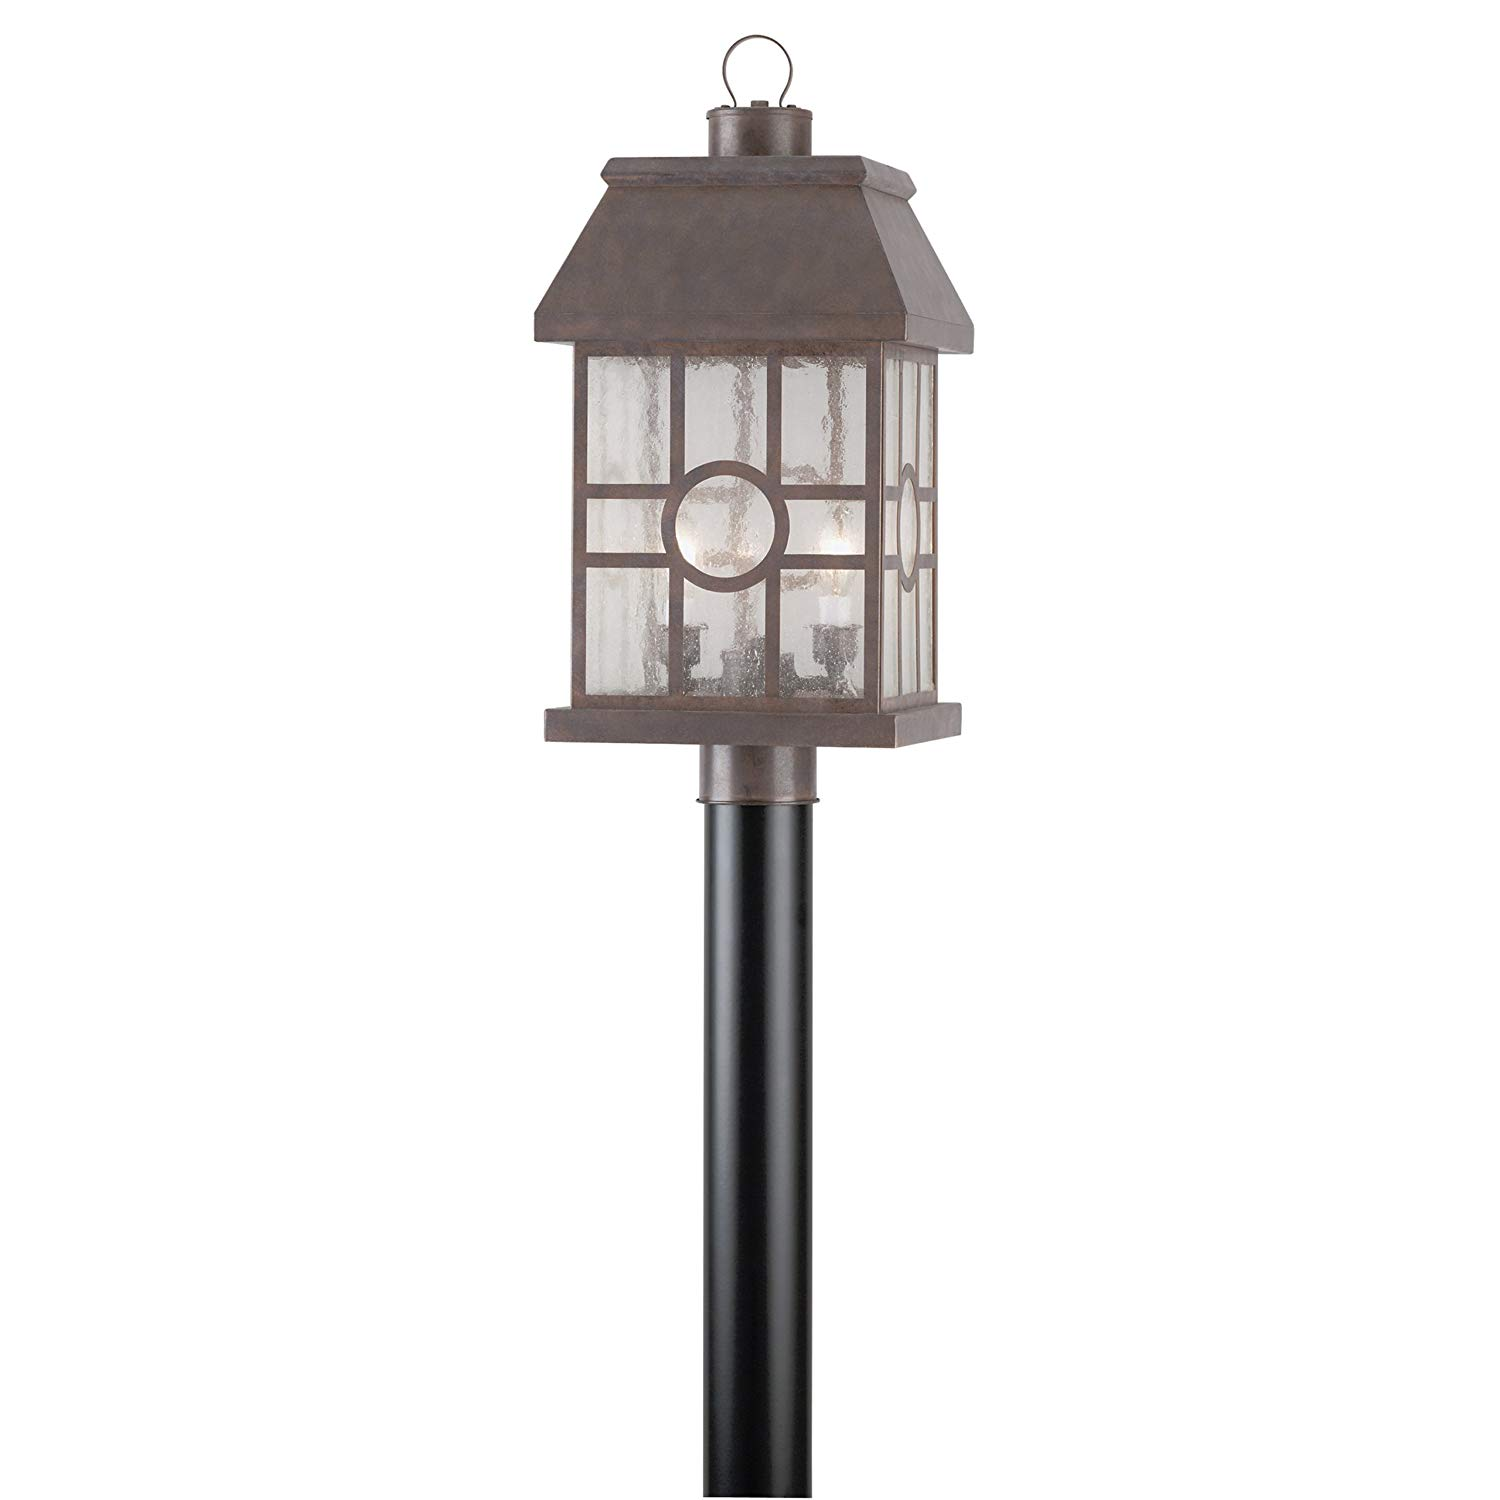 2 Light Post Top Lantern Burnt Sienna Finish on Solid Brass with Clear Seeded Glass Panels